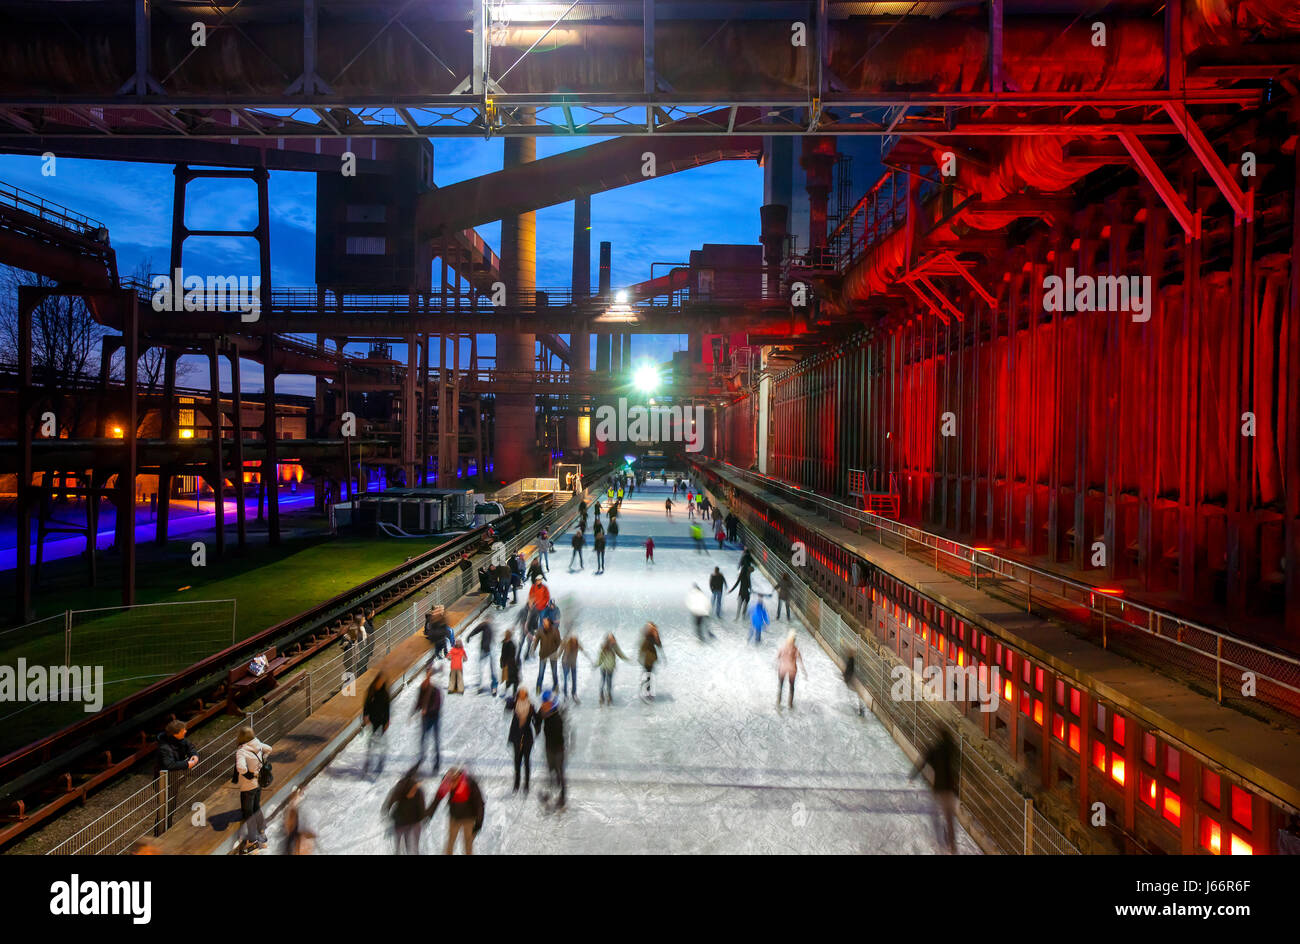 Ice-skating rink, ice-rink, cooking plant Zollverein, Zollverein Coal Mine Industrial Complex, UNESCO world cultural - Stock Image